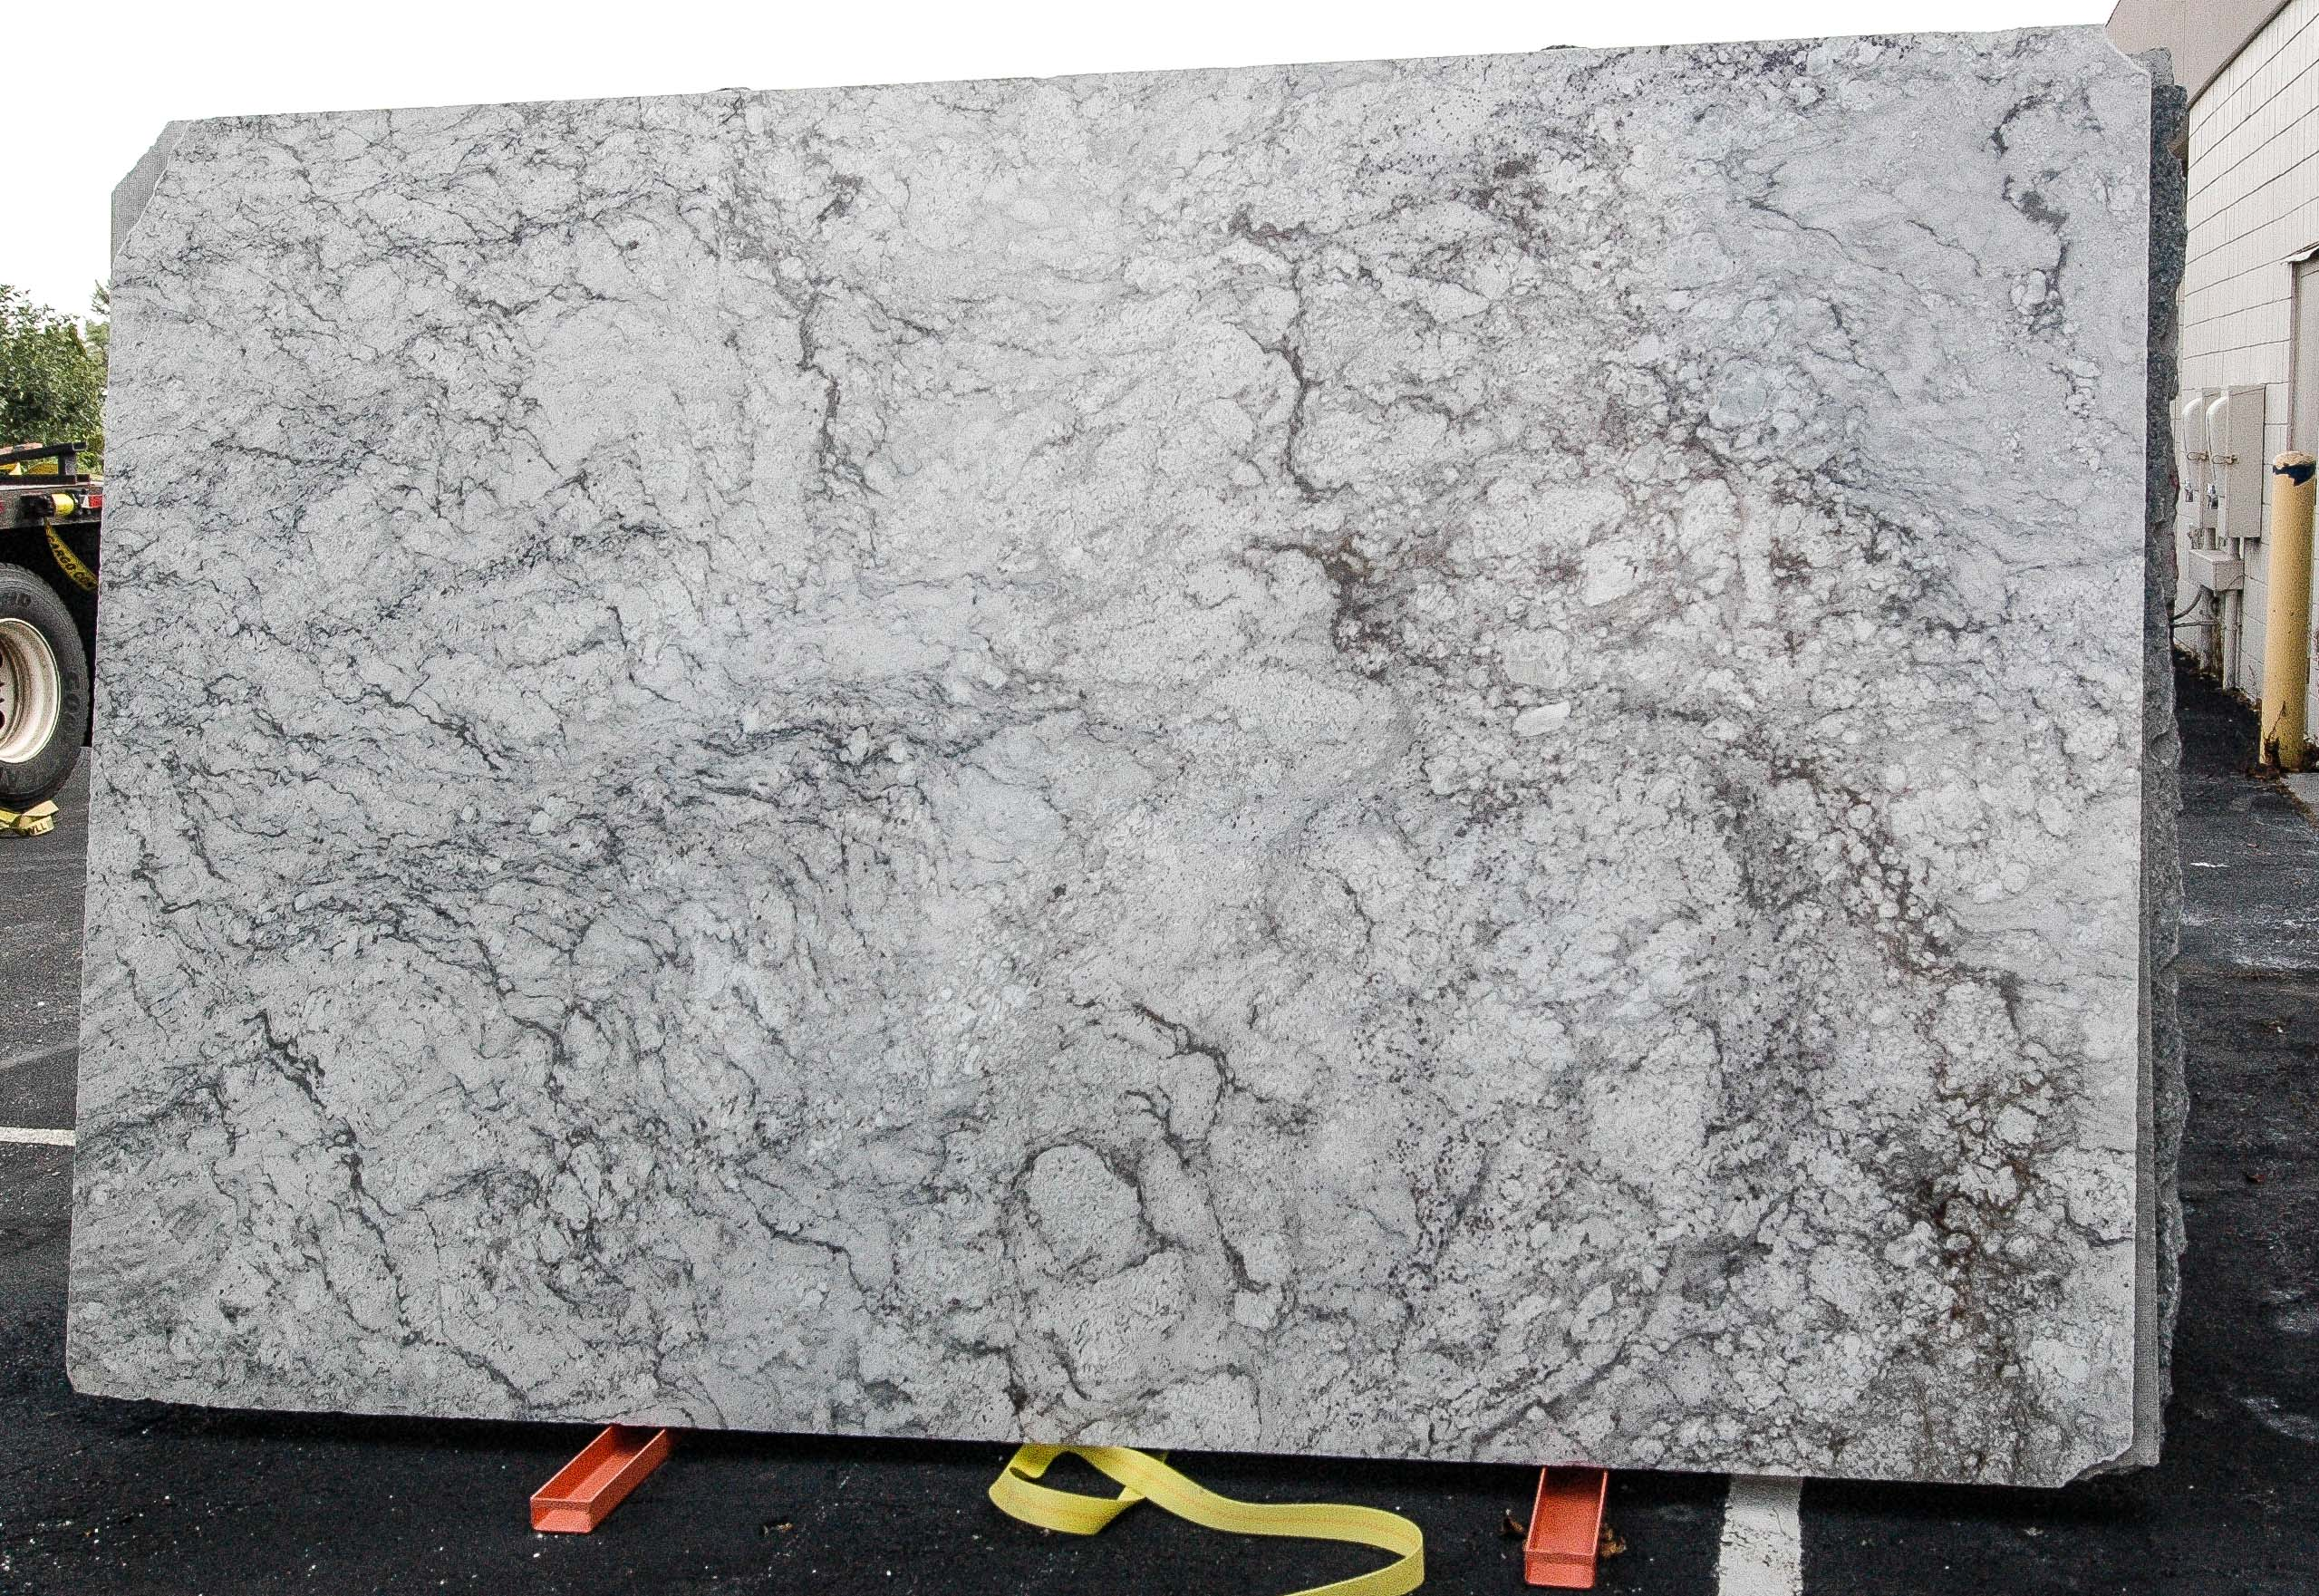 Thunder White Granite : White granite delivered today to opb ohio property brothers